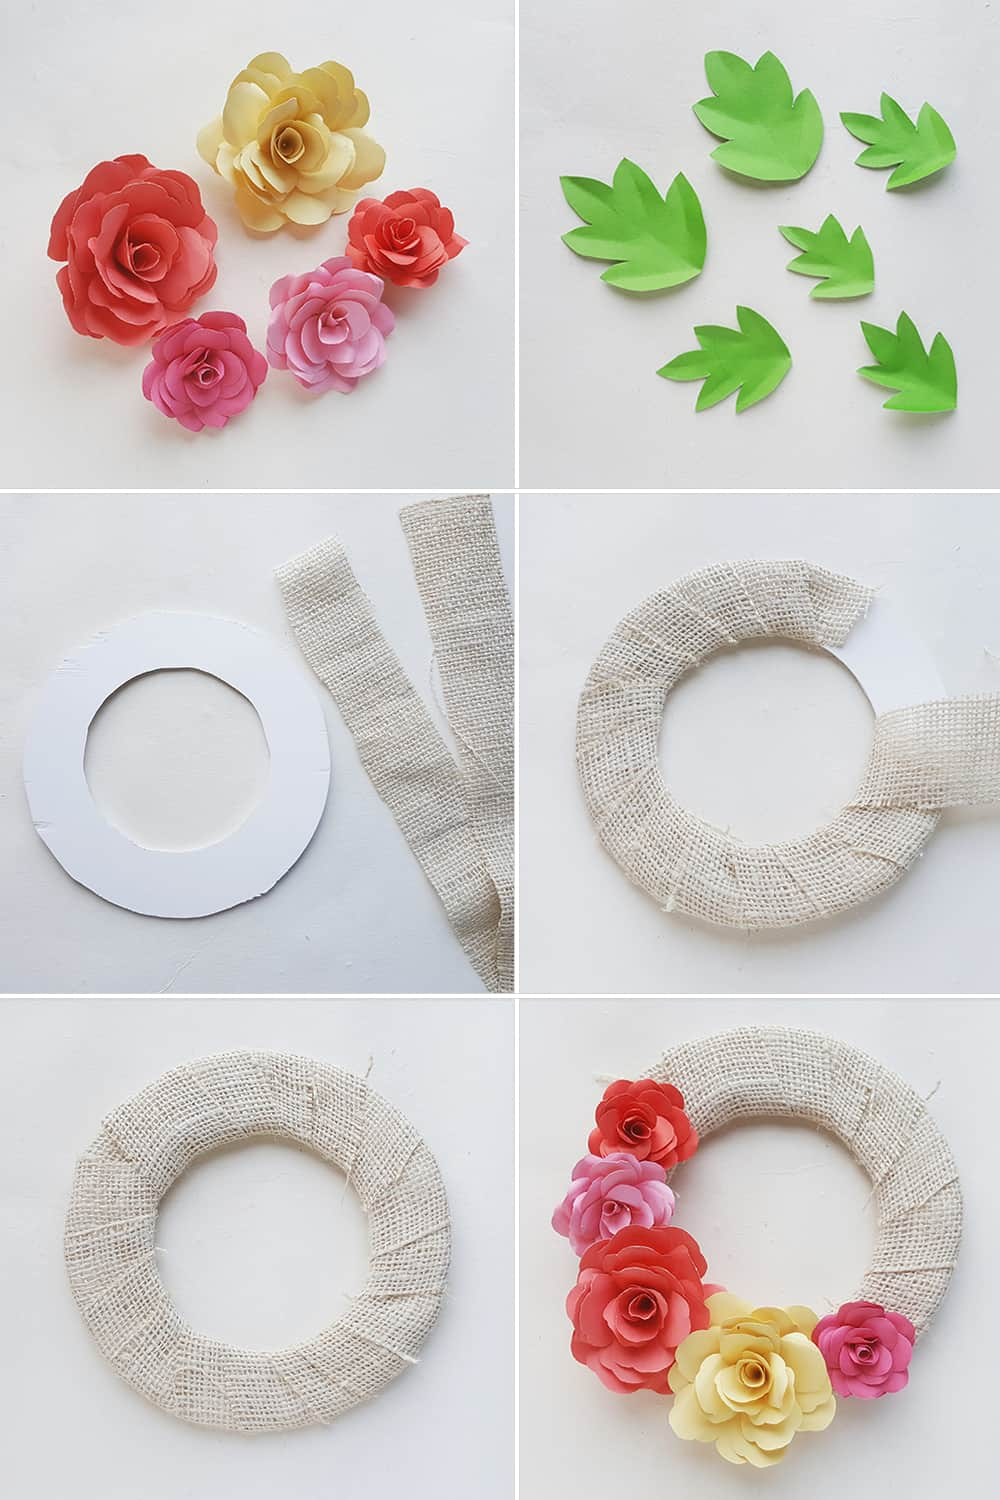 Make a lovely DIY paper rose wreath - perfect for Mother's Day or spring decor!